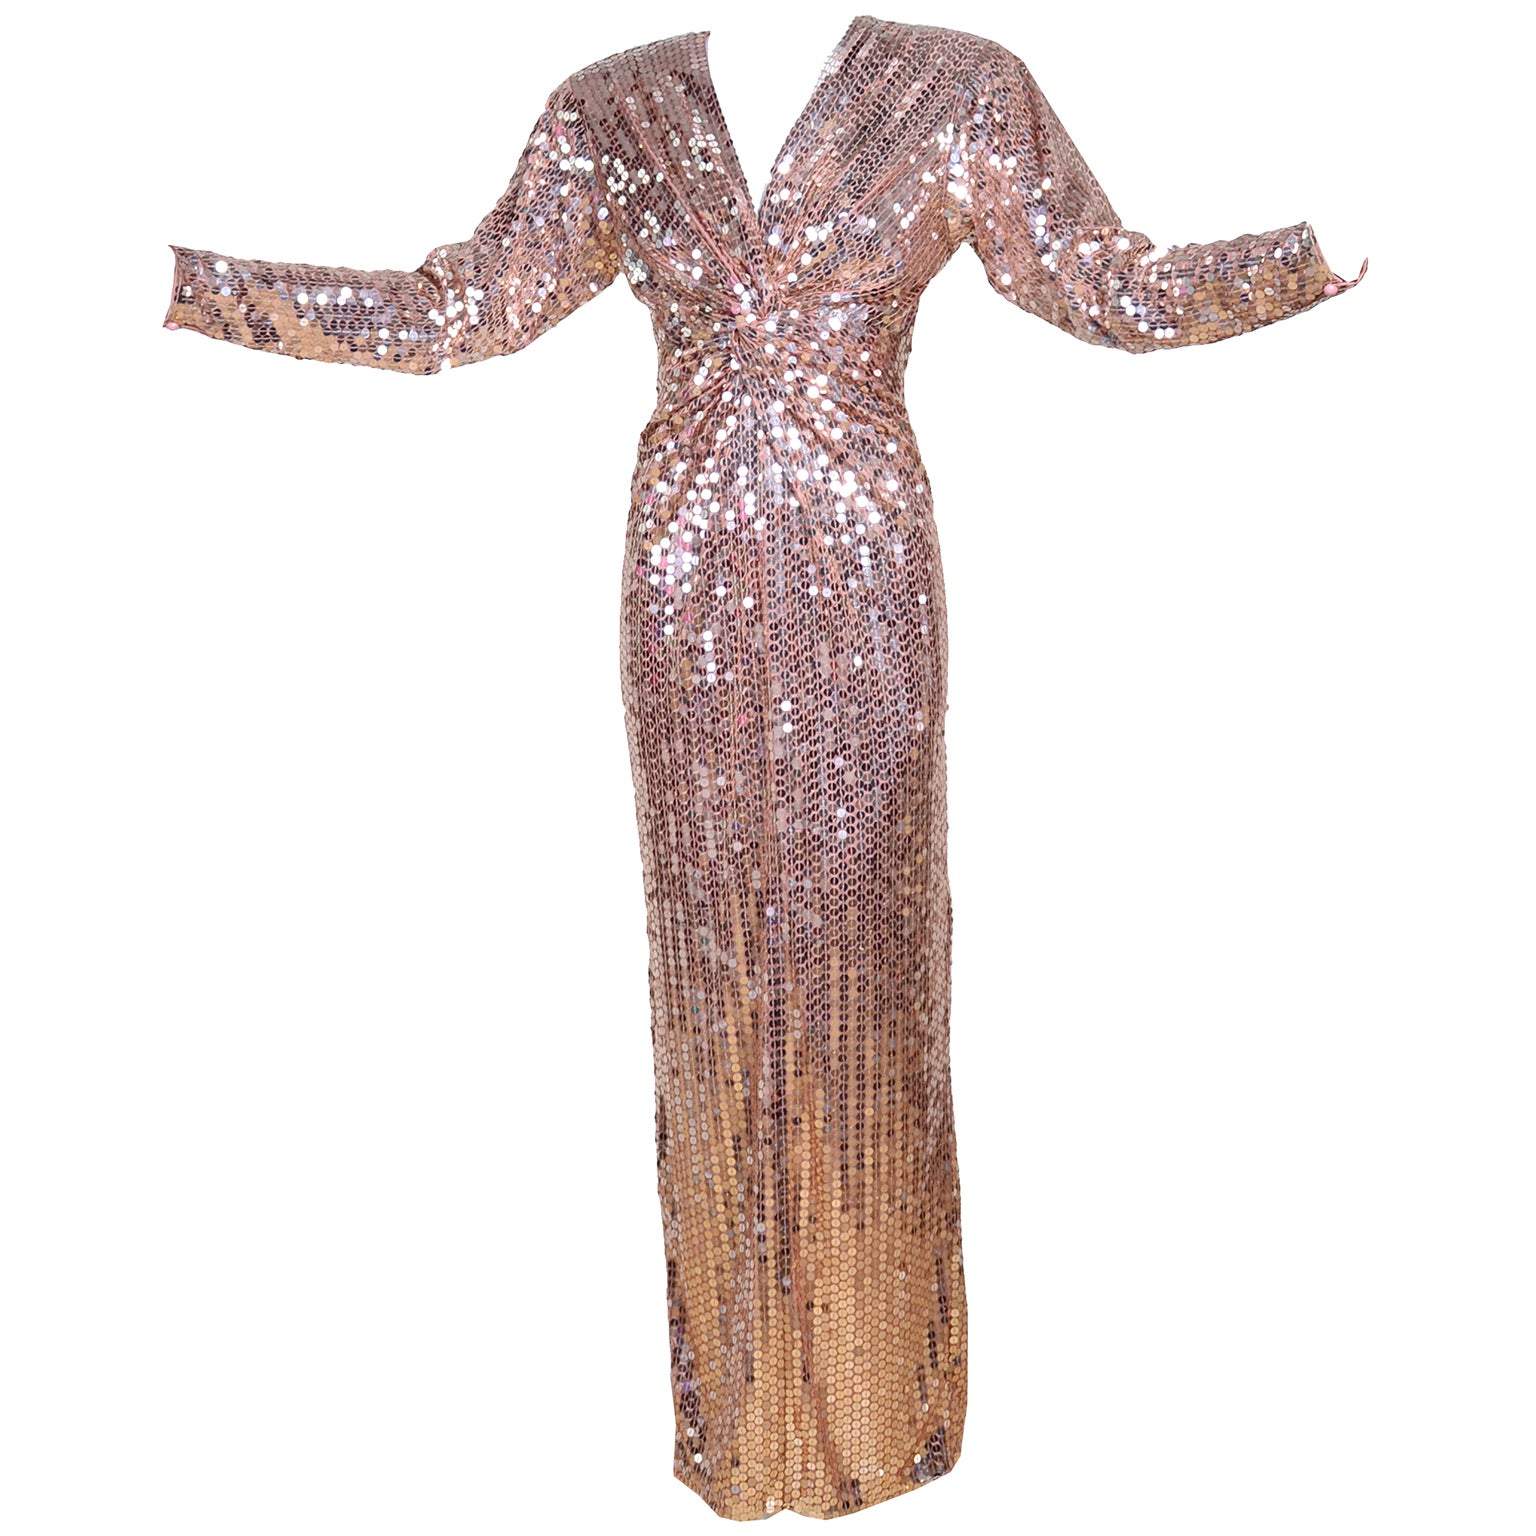 758e2ab17df Oleg Cassini Vintage Rose Gold Sequin Evening Gown Dress at 1stdibs